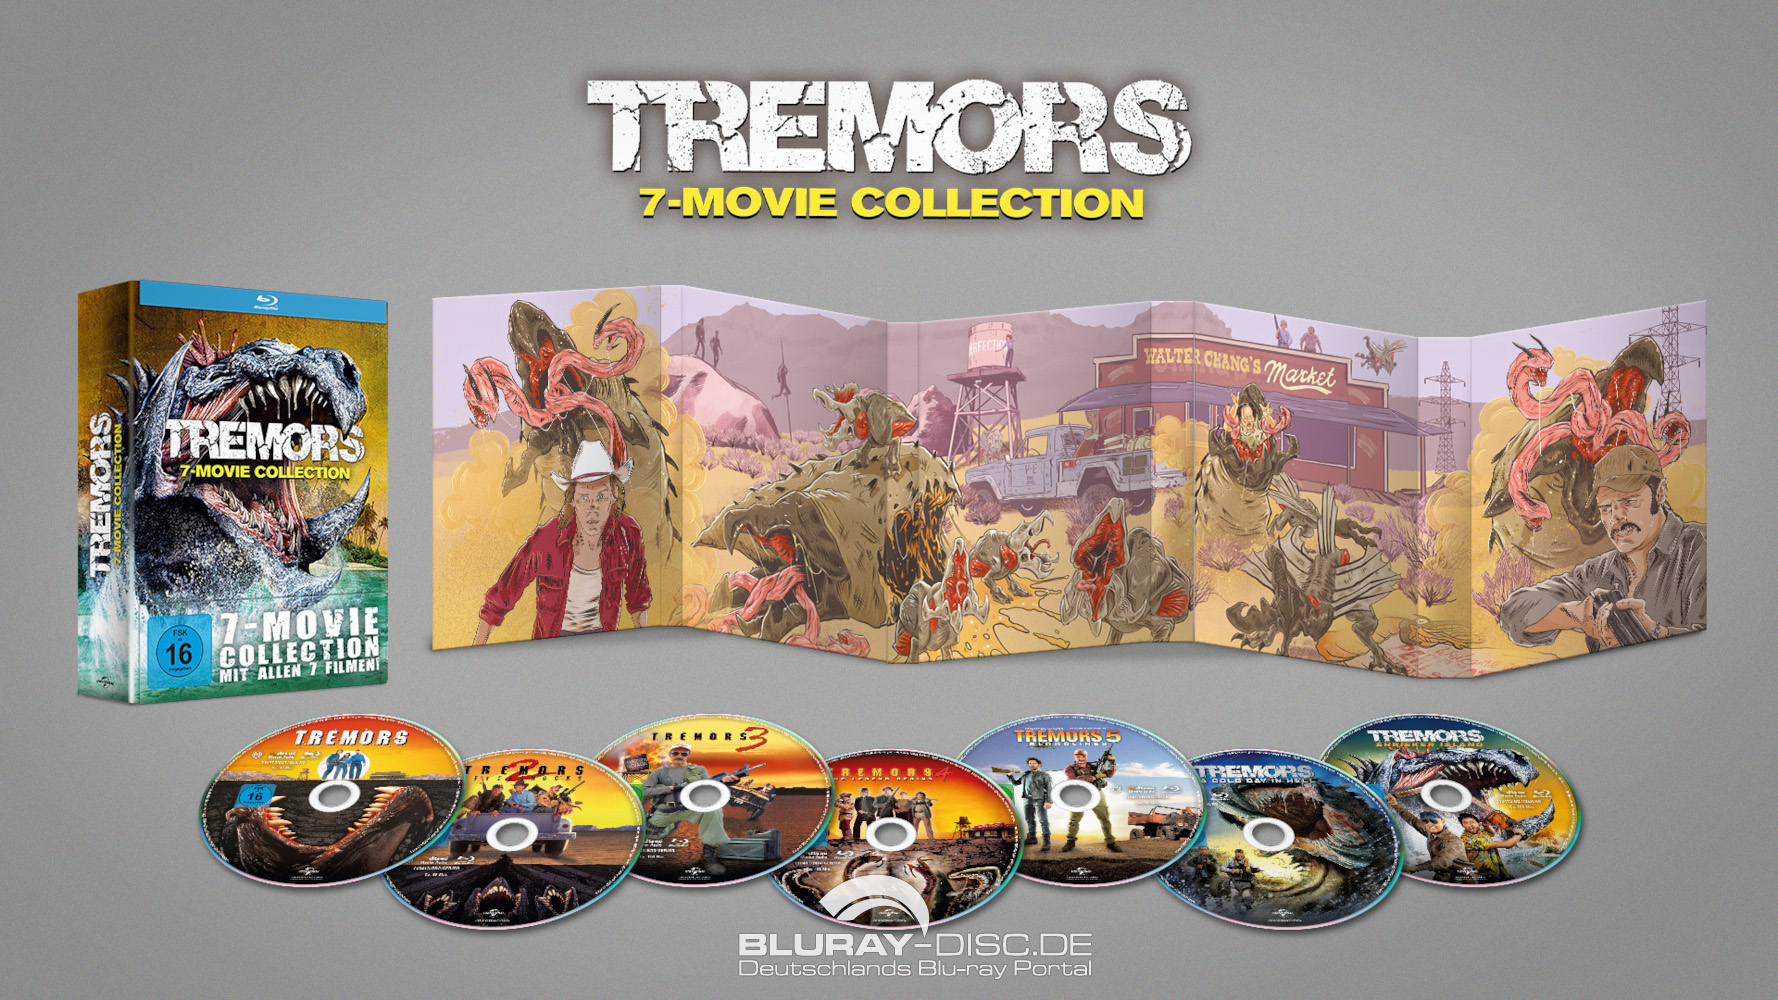 Tremors-7-Movie-Collection-Galerie-01.jpg